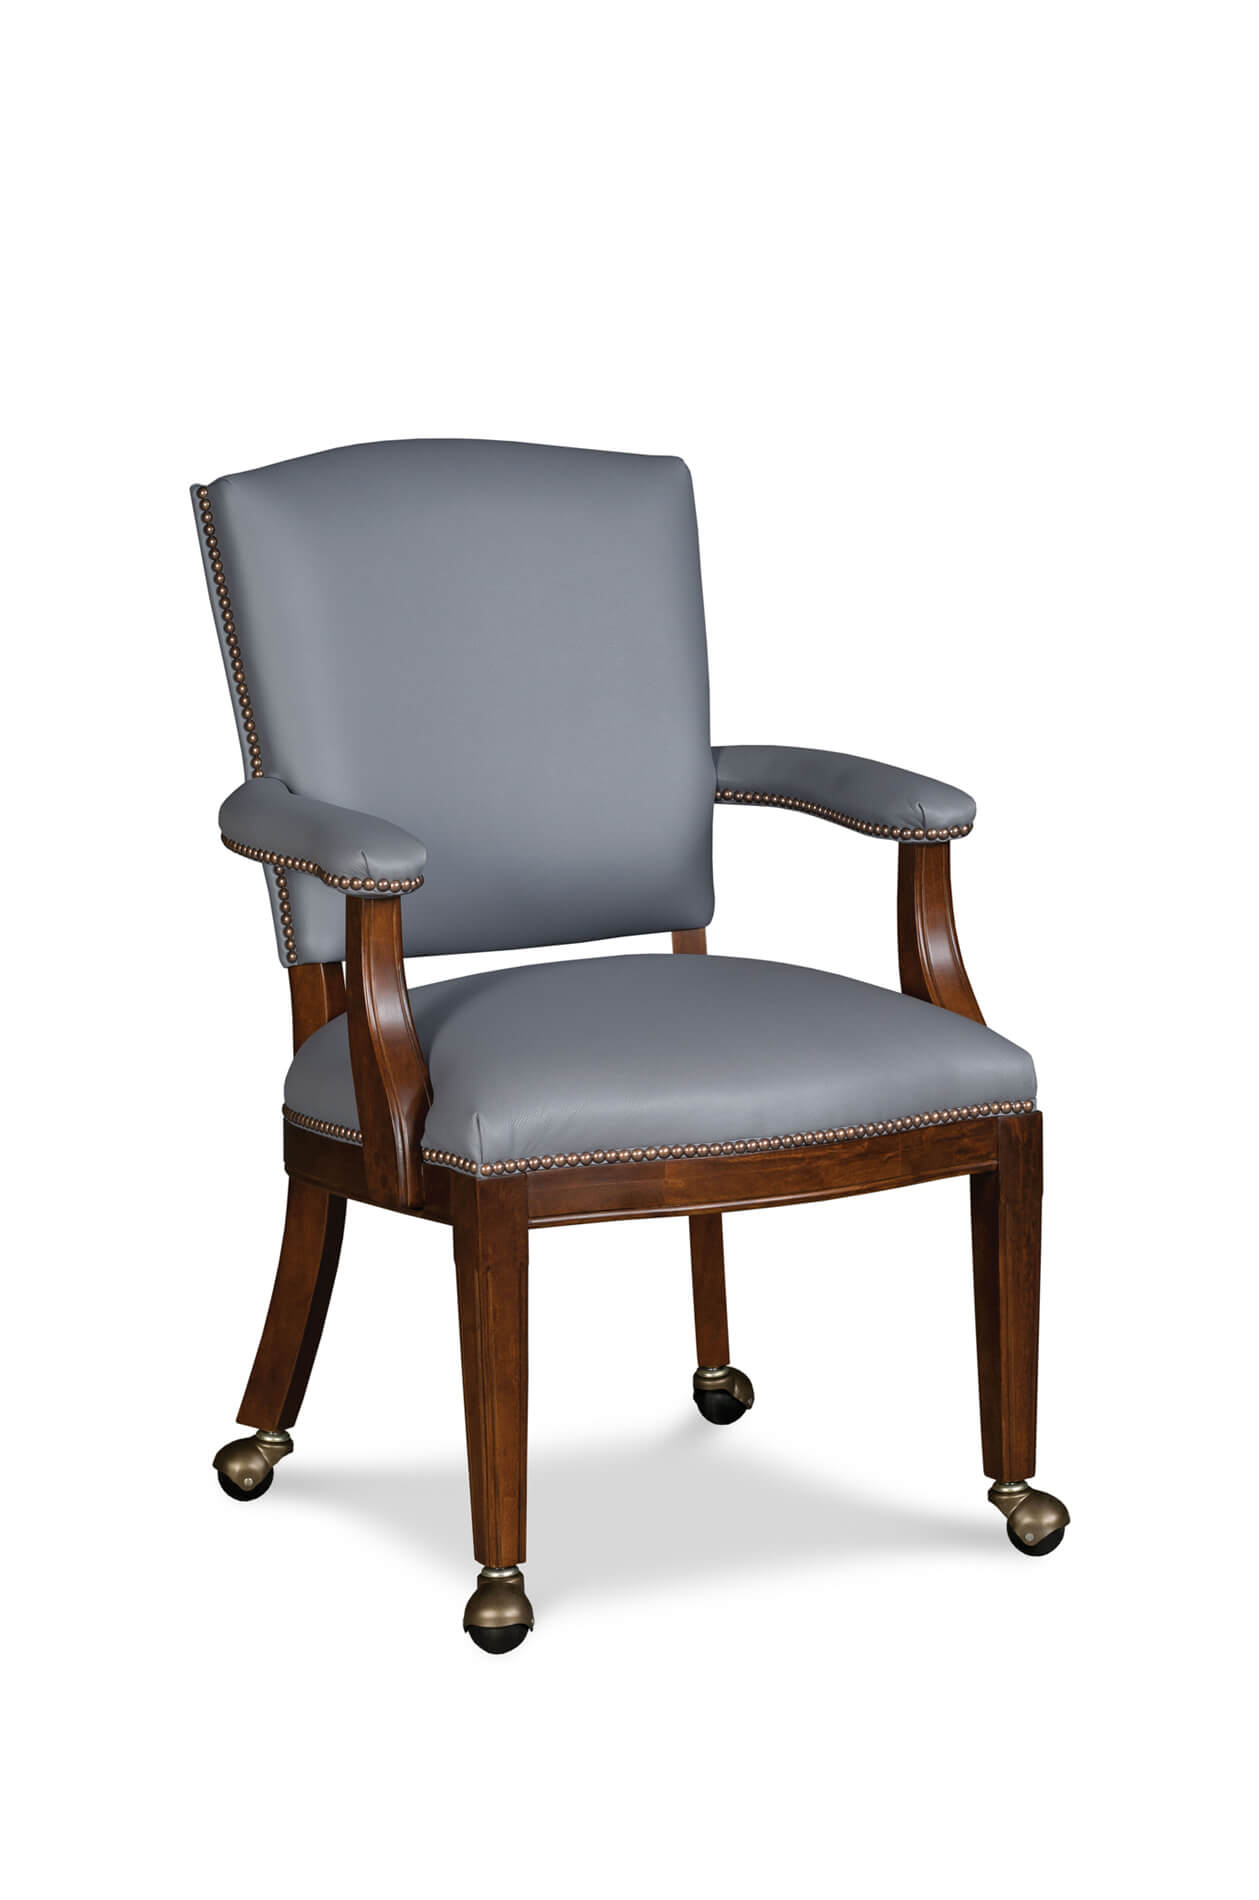 Fairfield's Allen Upholstered Dining Arm Chair with Casters